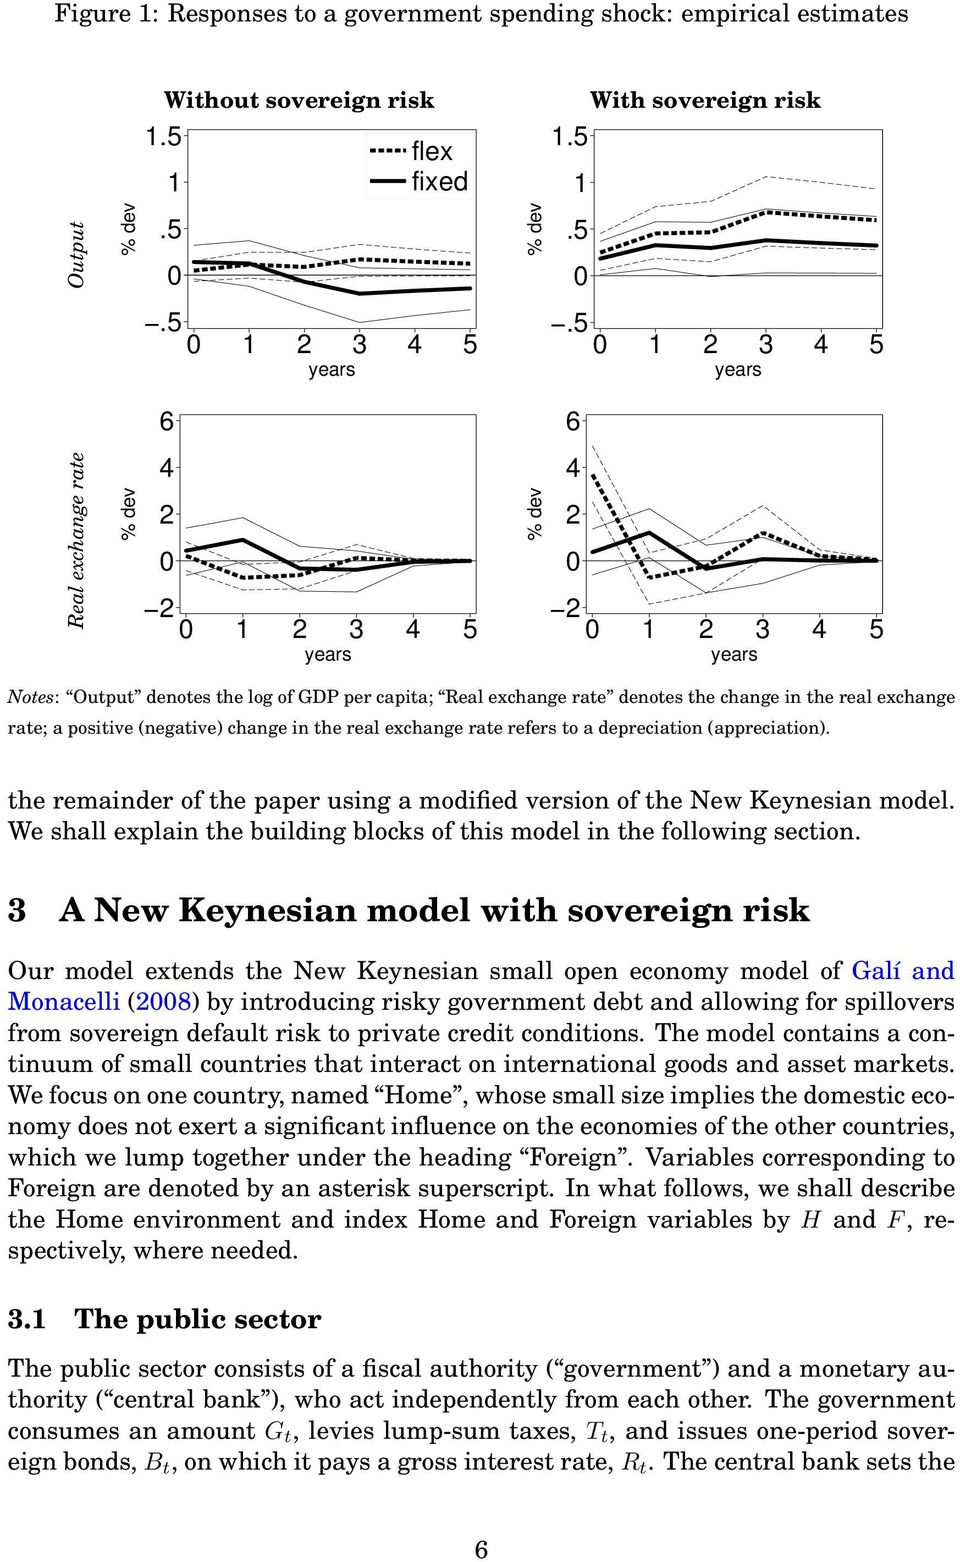 a positive negative) change in the real exchange rate refers to a depreciation appreciation). the remainder of the paper using a modified version of the New Keynesian model.